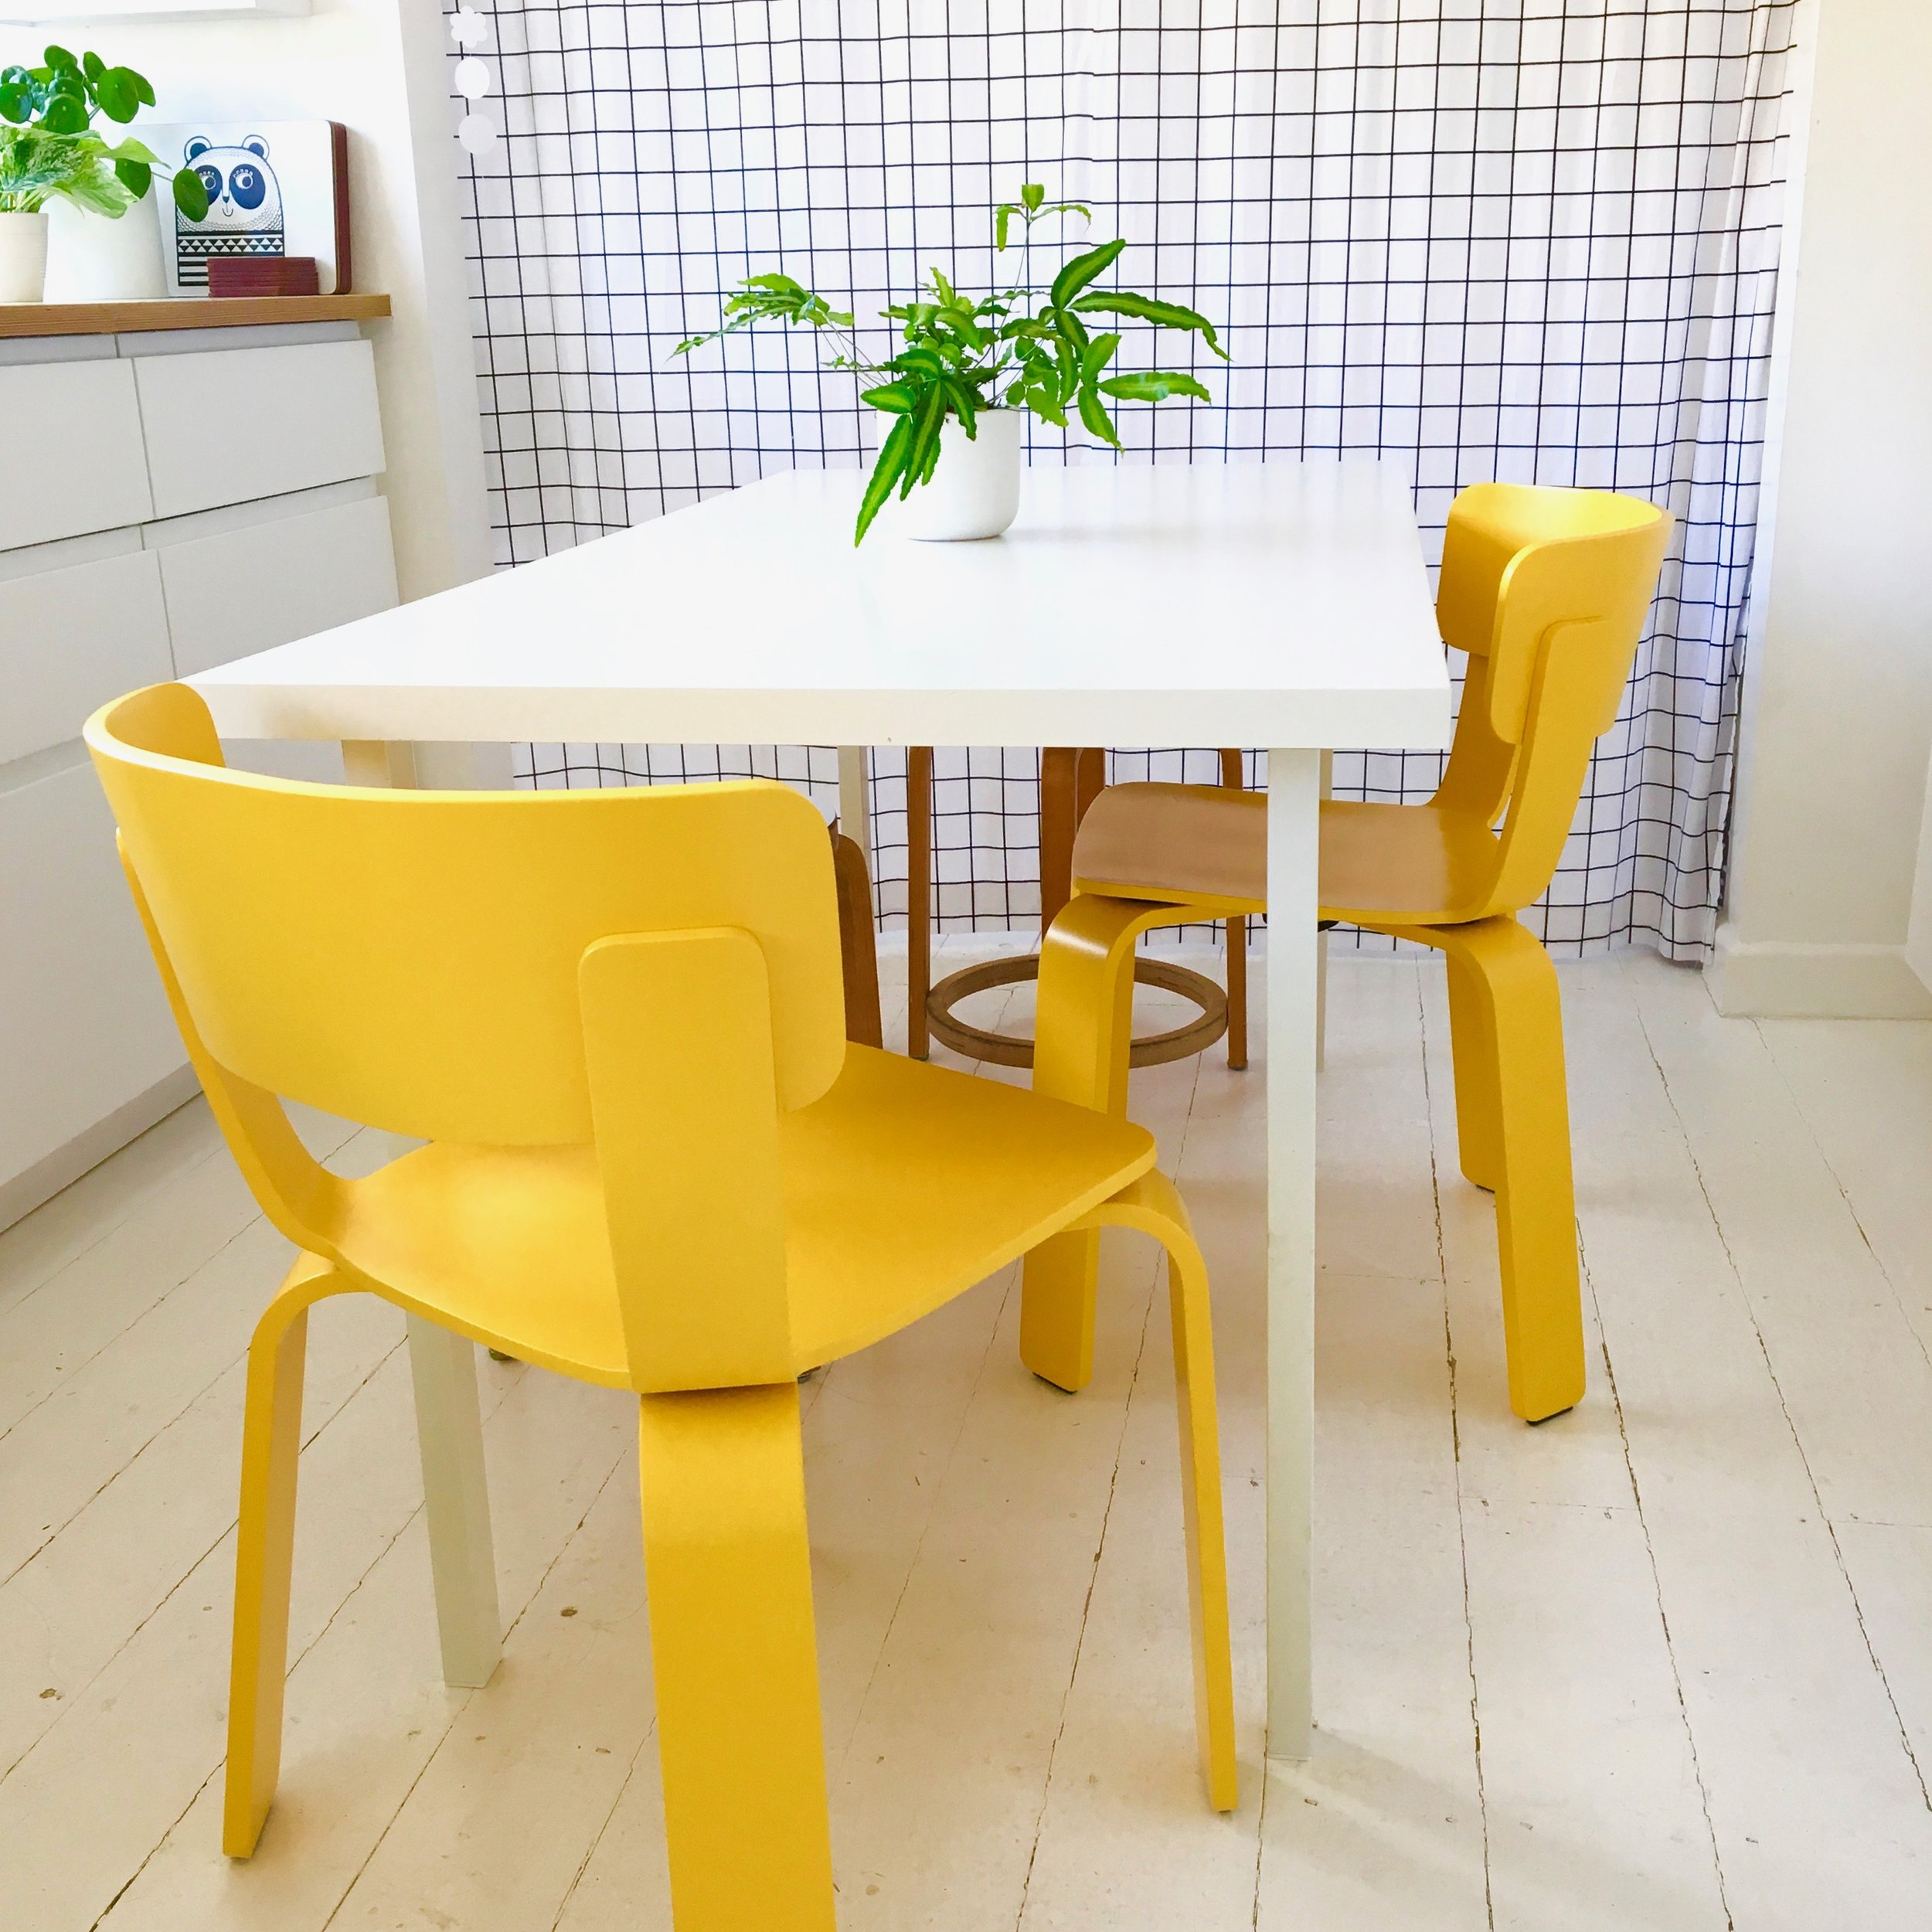 Our yellow Bento chairs in the kitchen